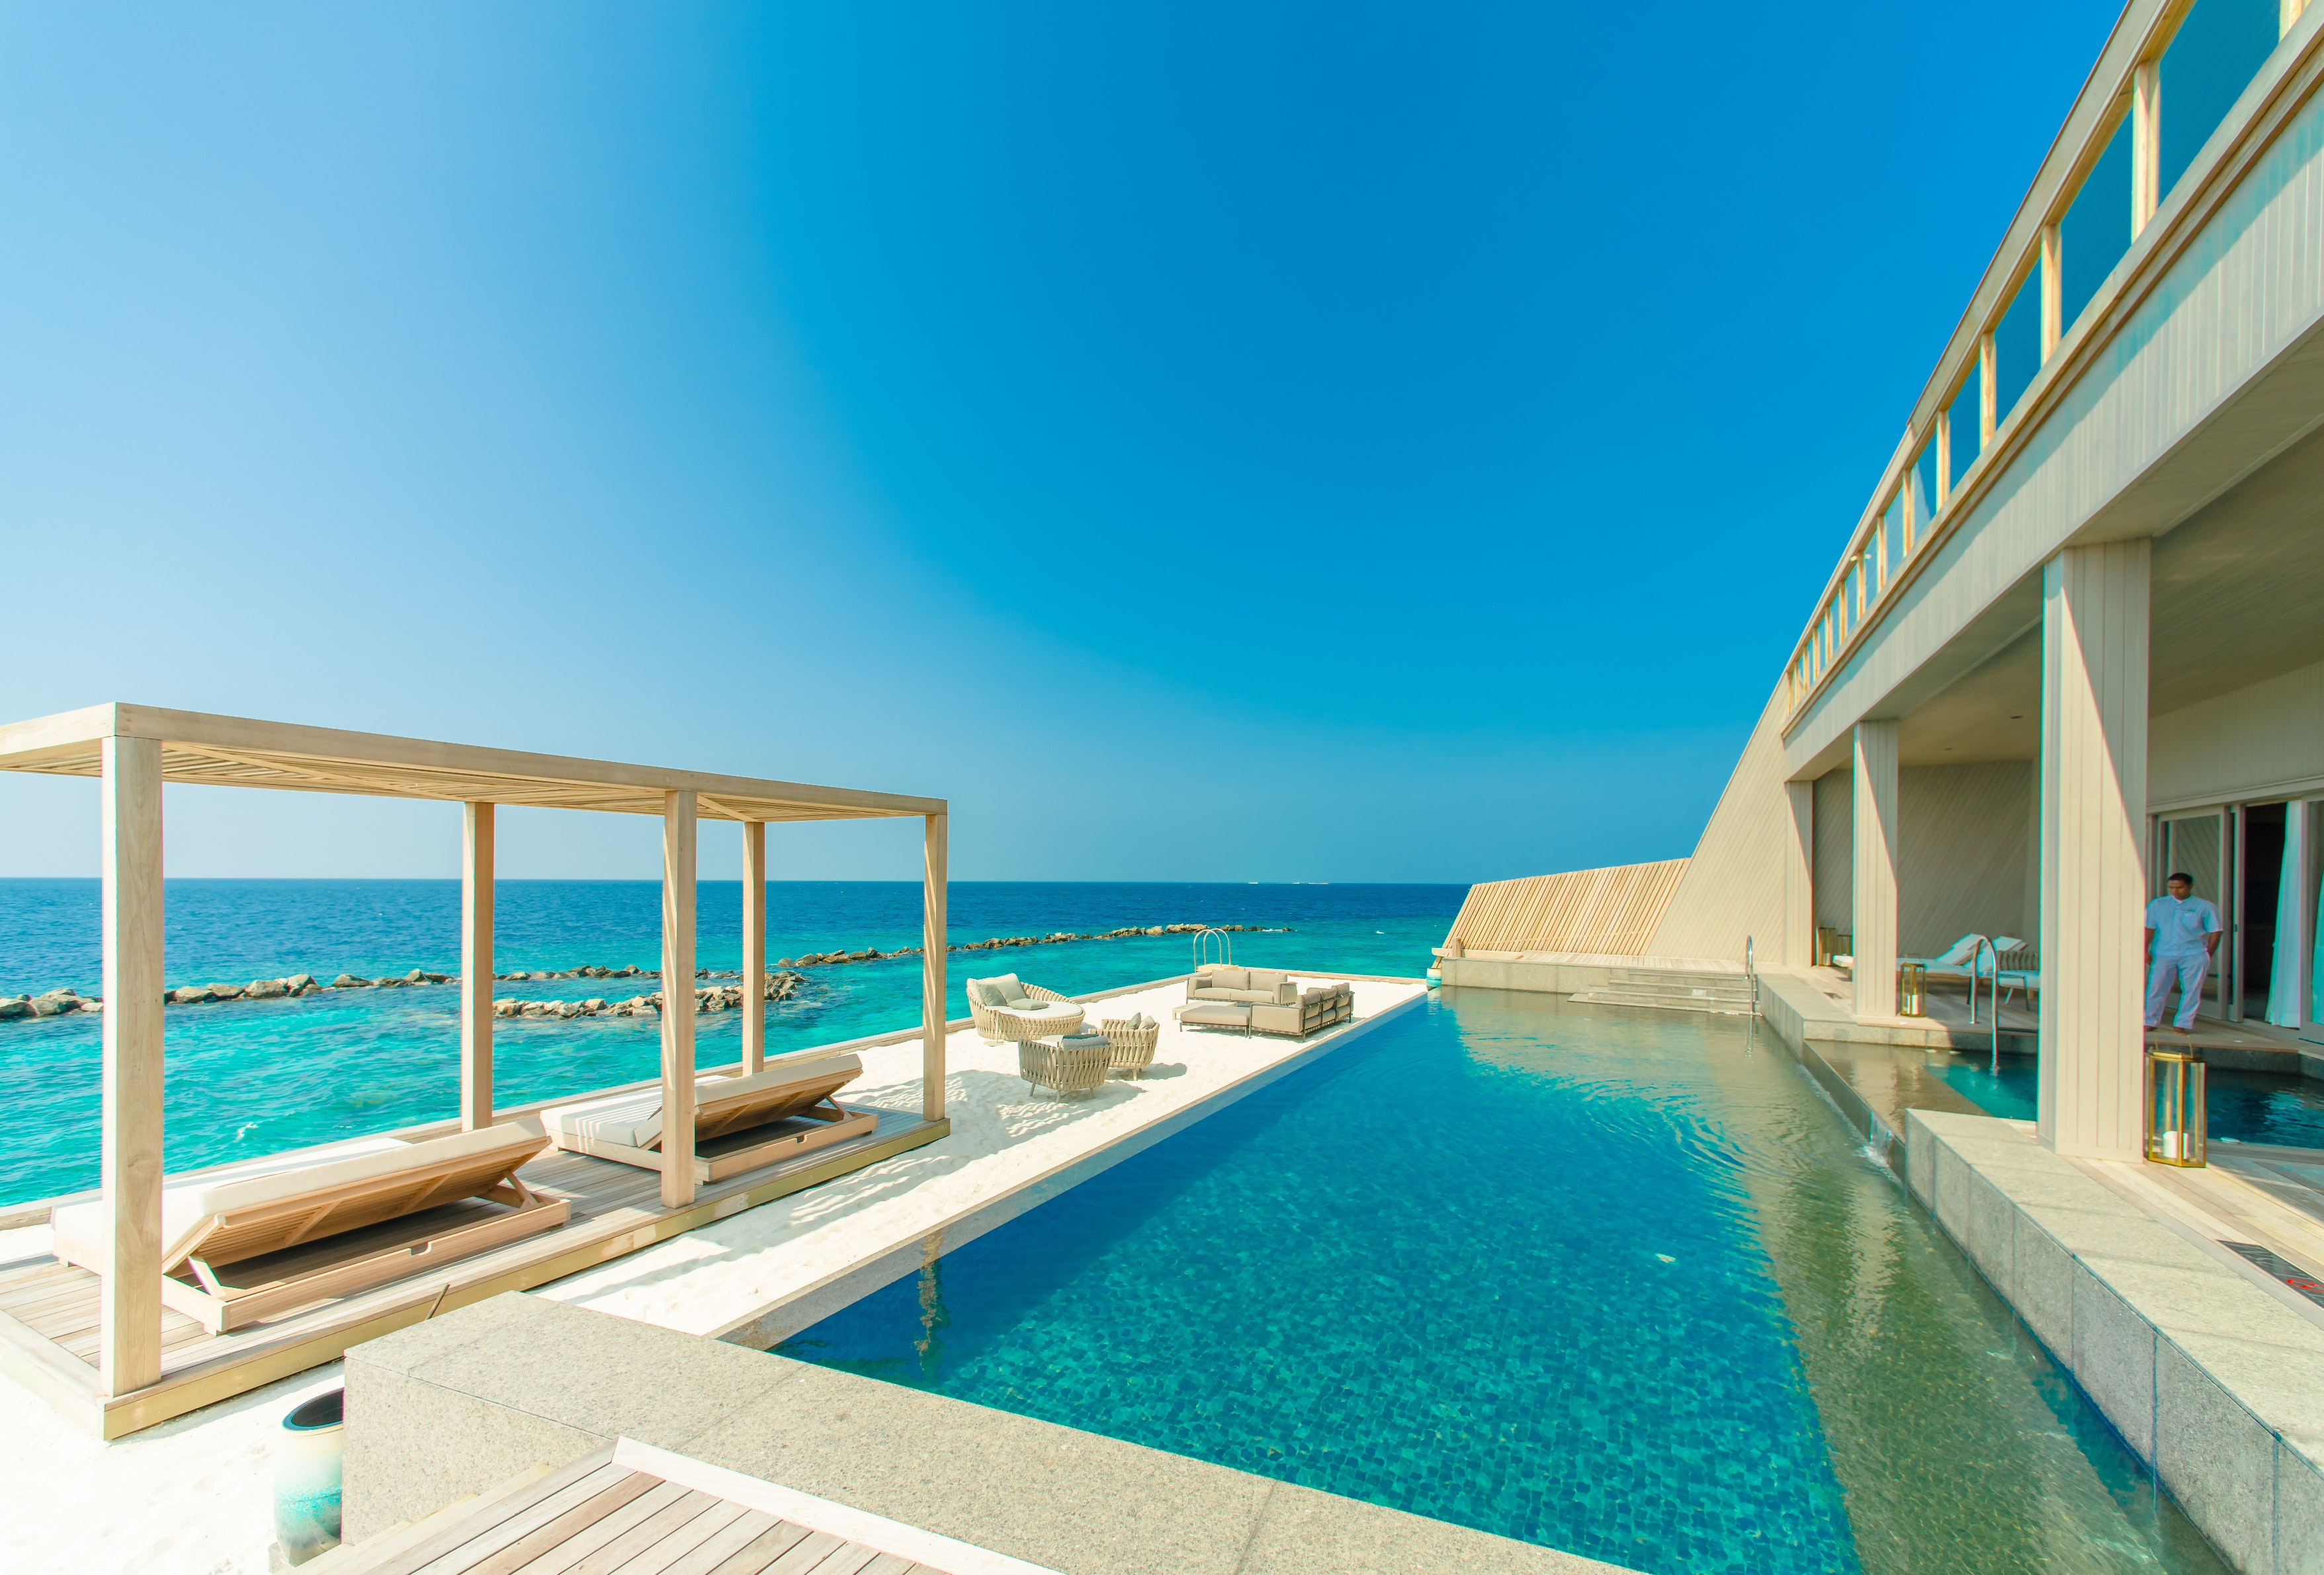 The luxury hotel has been opened in Limassol